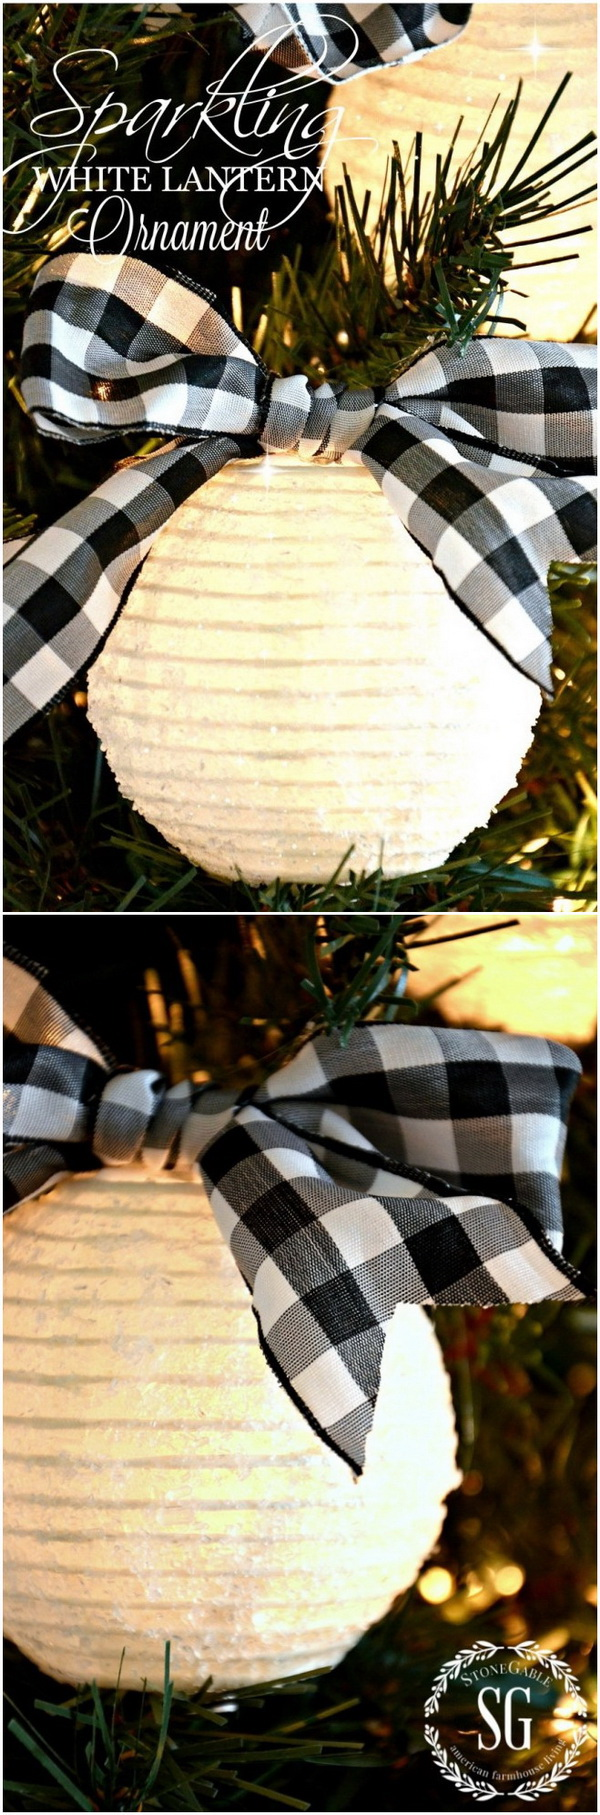 Sparkling White Lantern Christmas Ornaments. This sparkling white lantern ornament adds glows from the inside and sparkles to your holiday decor.